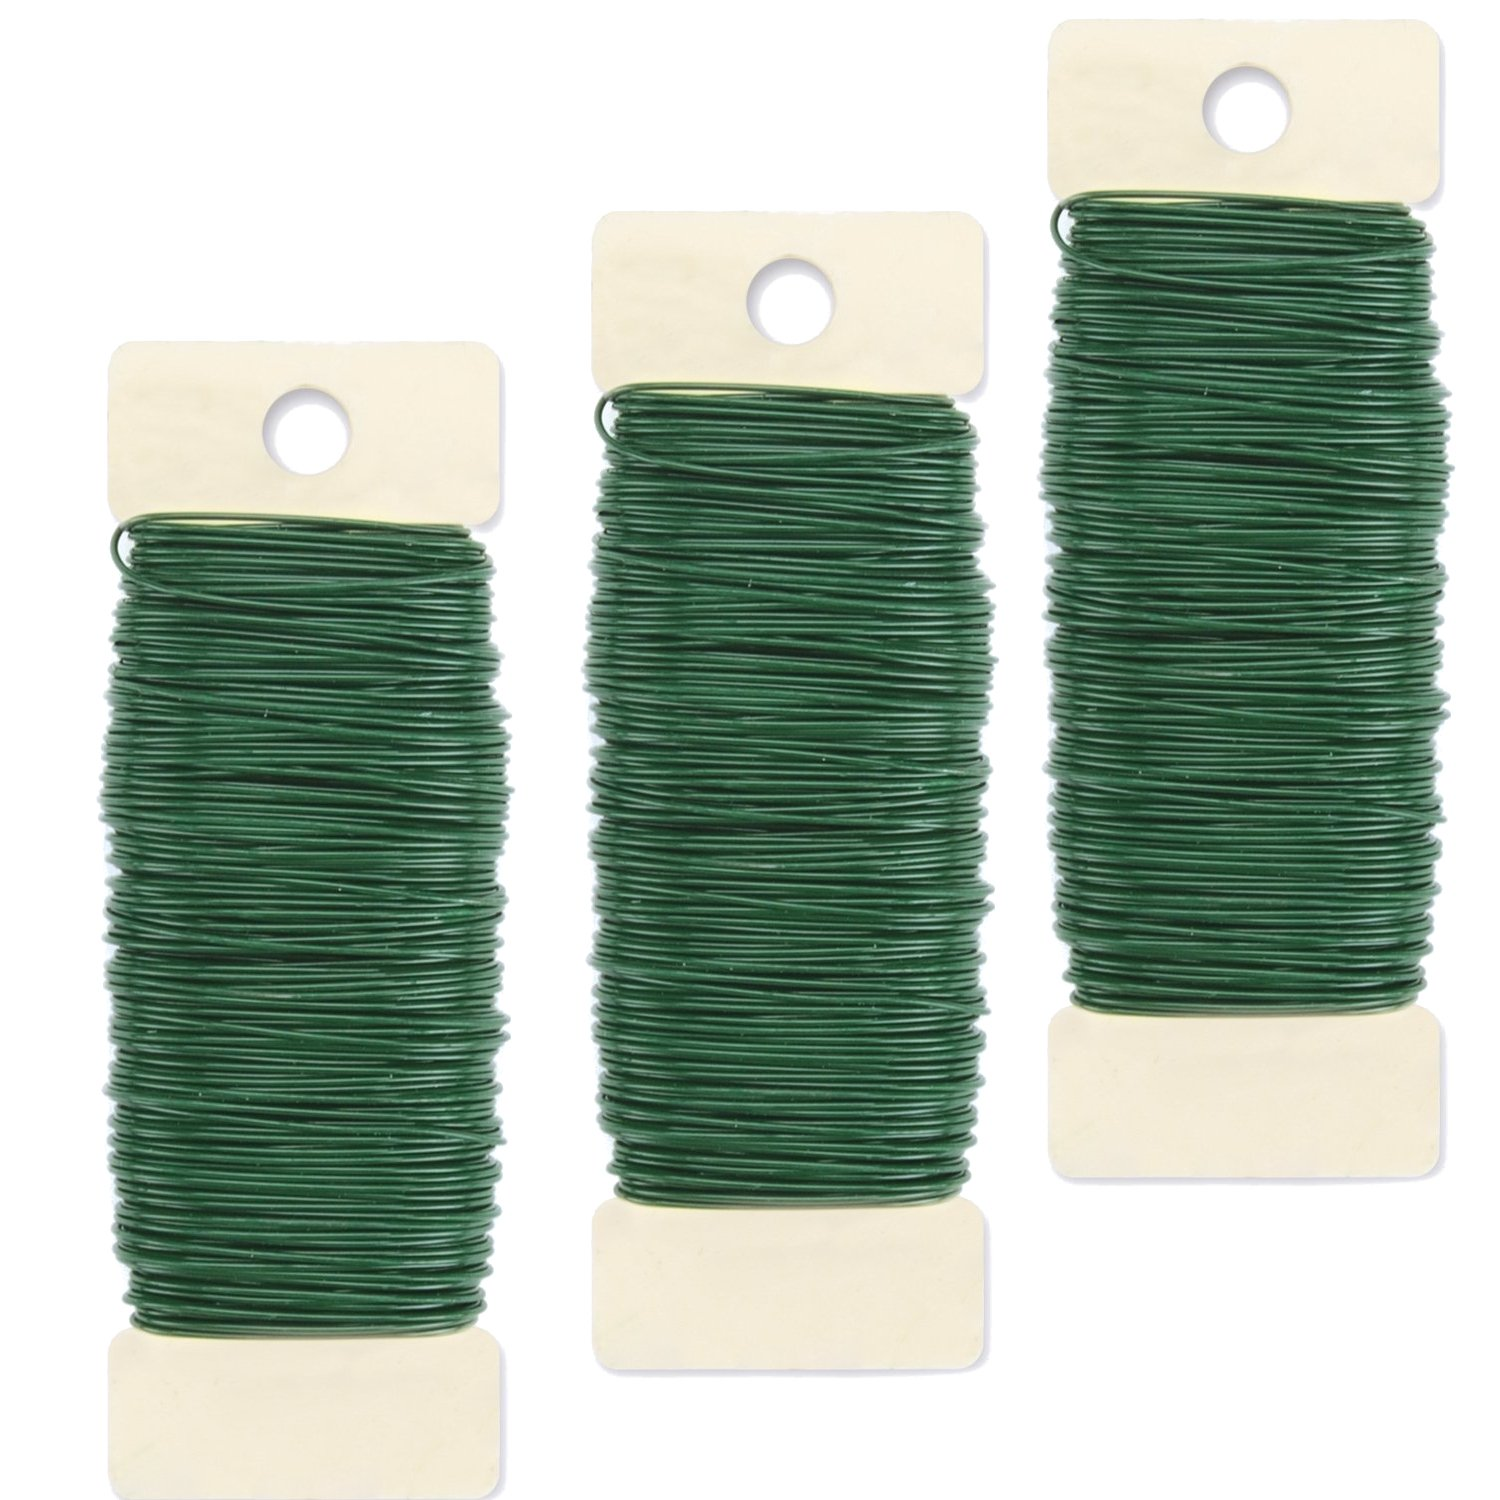 Curated Nirvana Paddle Wire for Wreaths, Garland, Floral Arrangements and Holiday Decorating Projects - 22 Gauge, Green - 330 Total Feet (3 Pack)